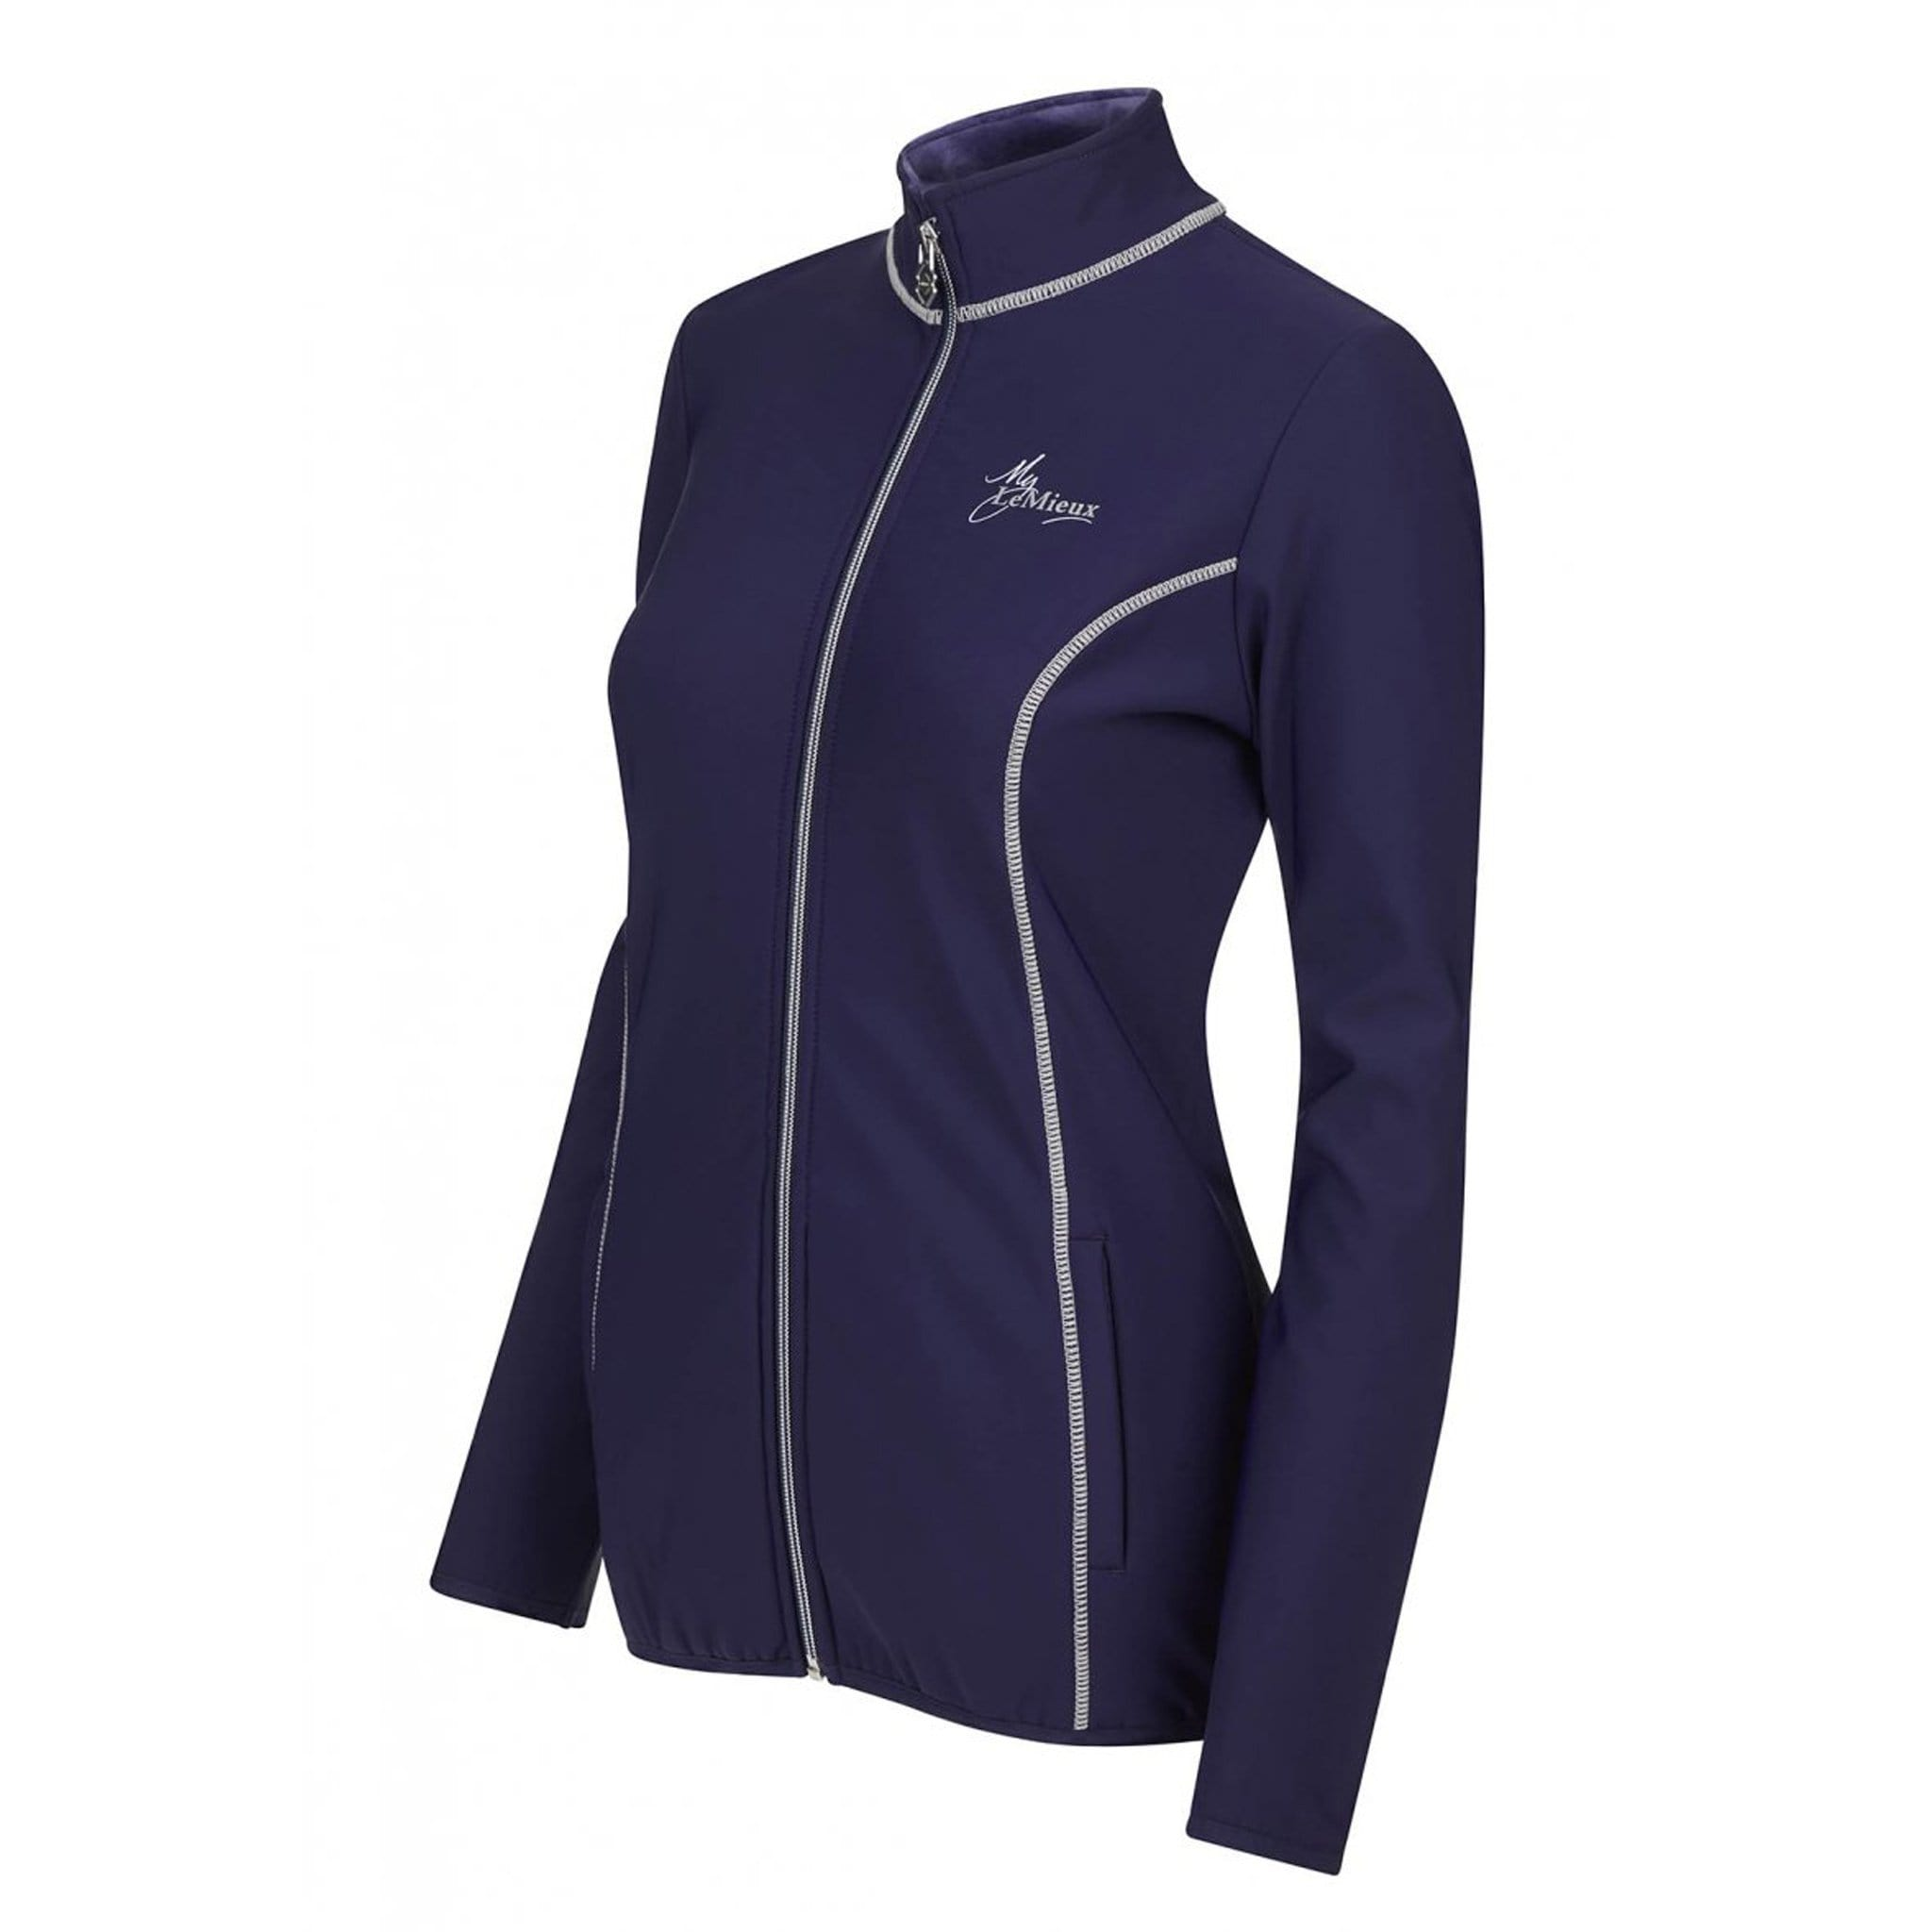 LeMieux Madrisa Fleece Jacket 5114 Ink Blue Side View